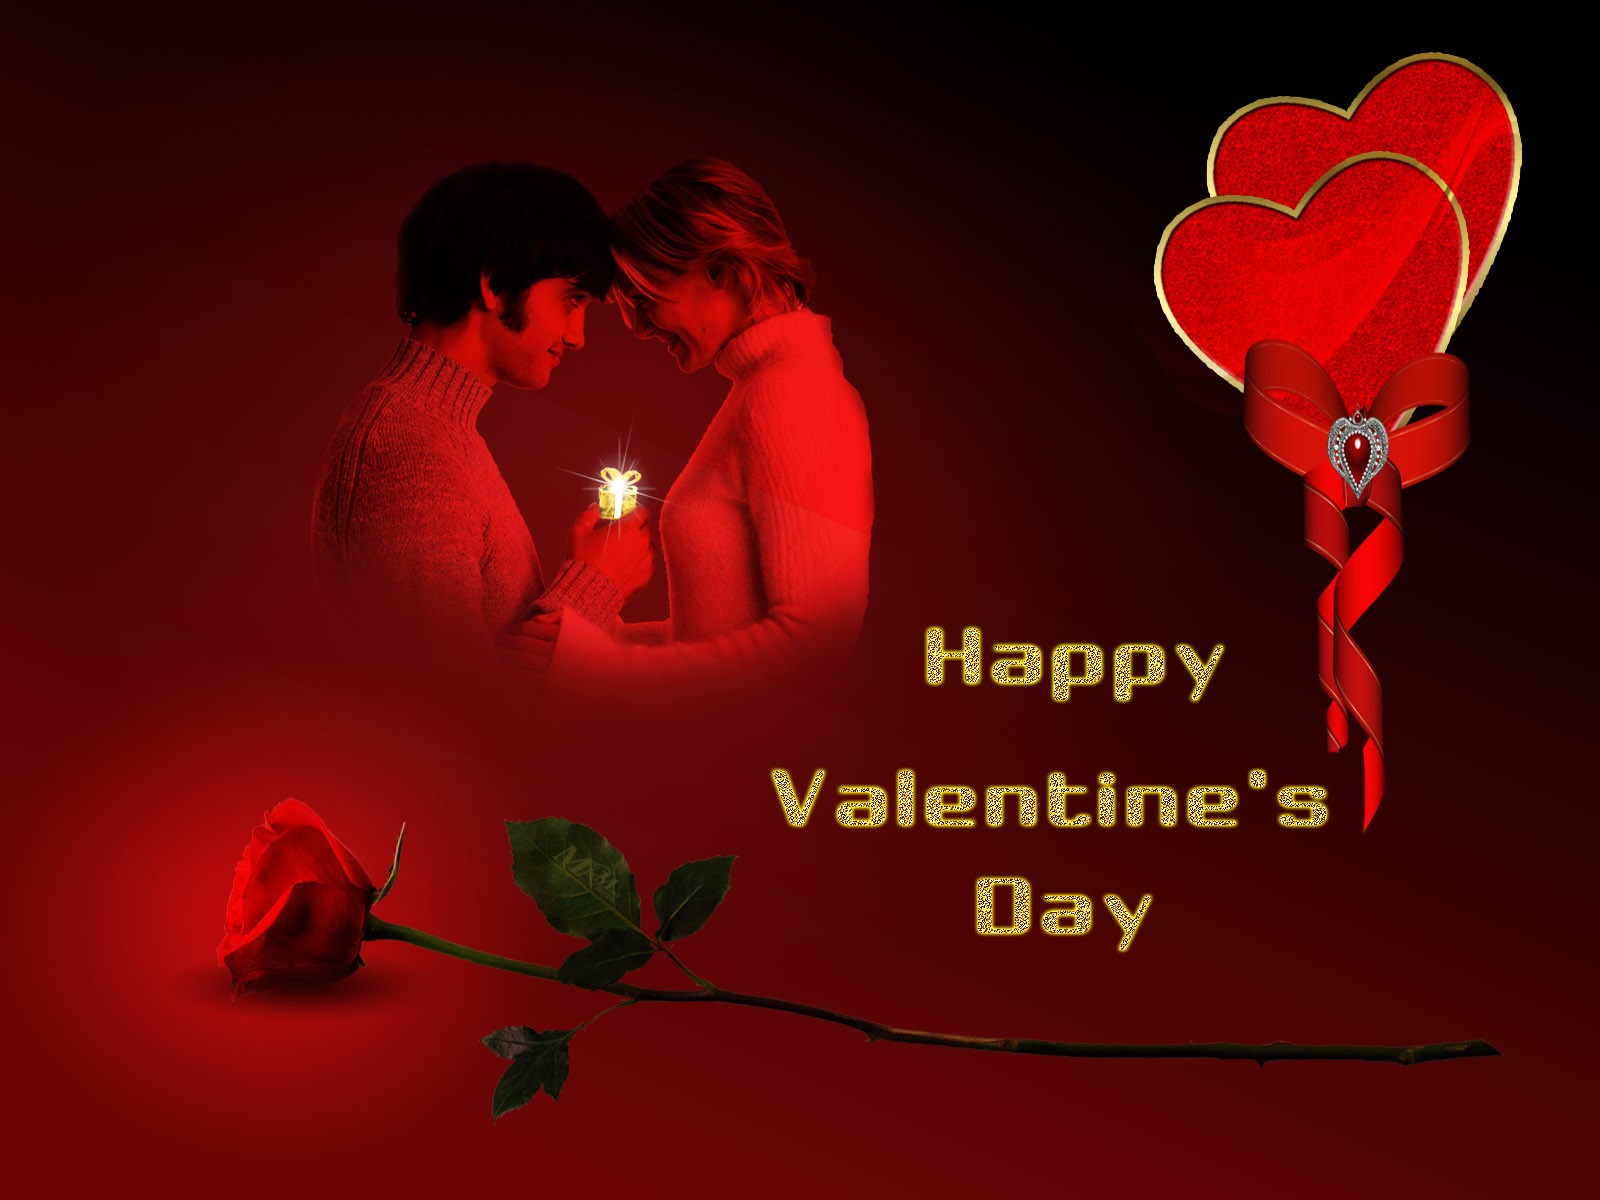 Couple in Love Happy Valentines Day Wallpaper Download 1600x1200